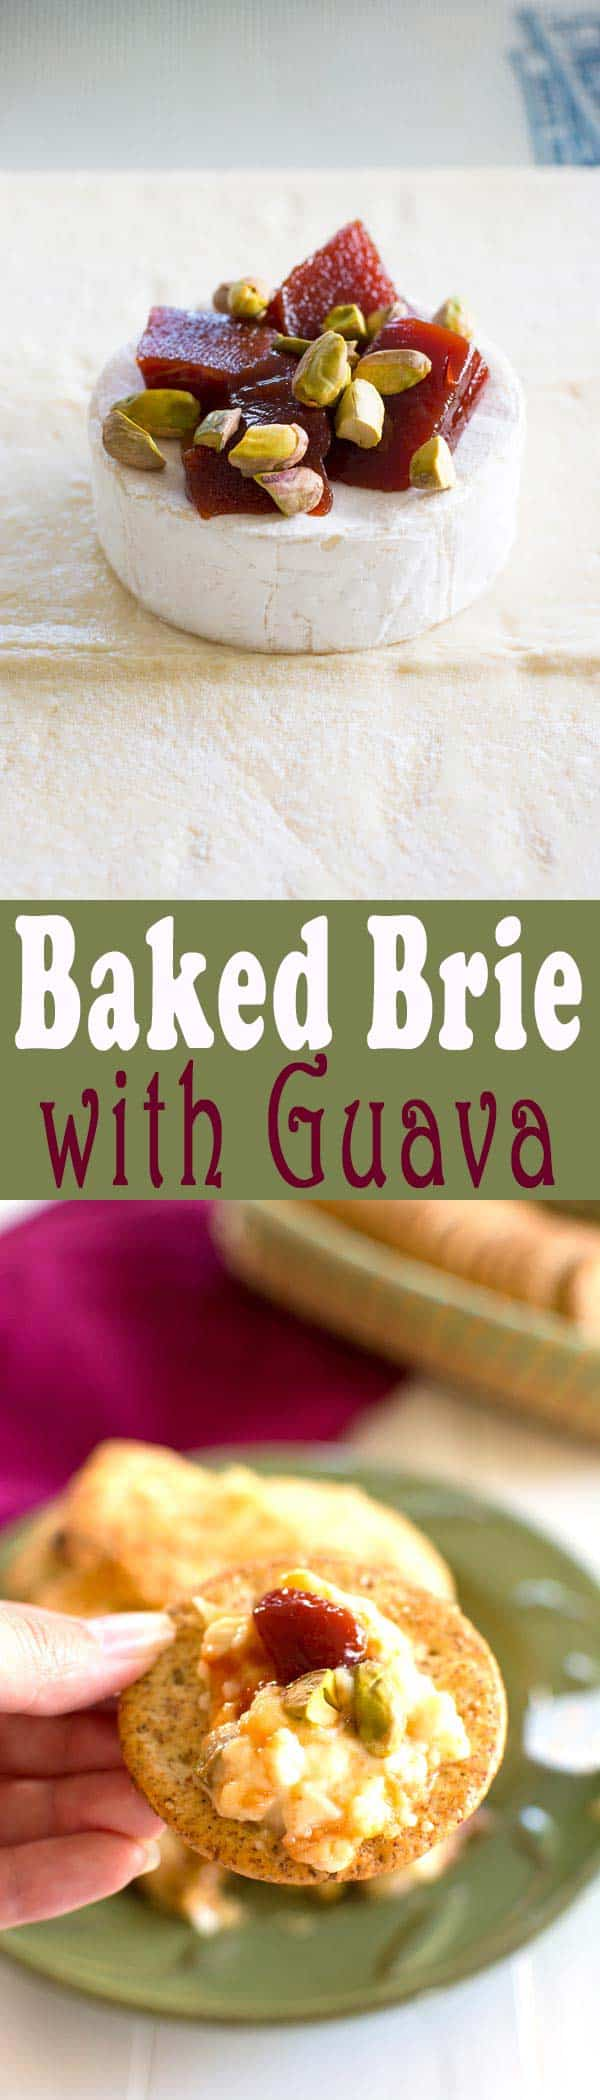 Classic French appetizer meets sweet tropical treat! You'll be the toast of the party with this baked Brie Cheese with Guava!